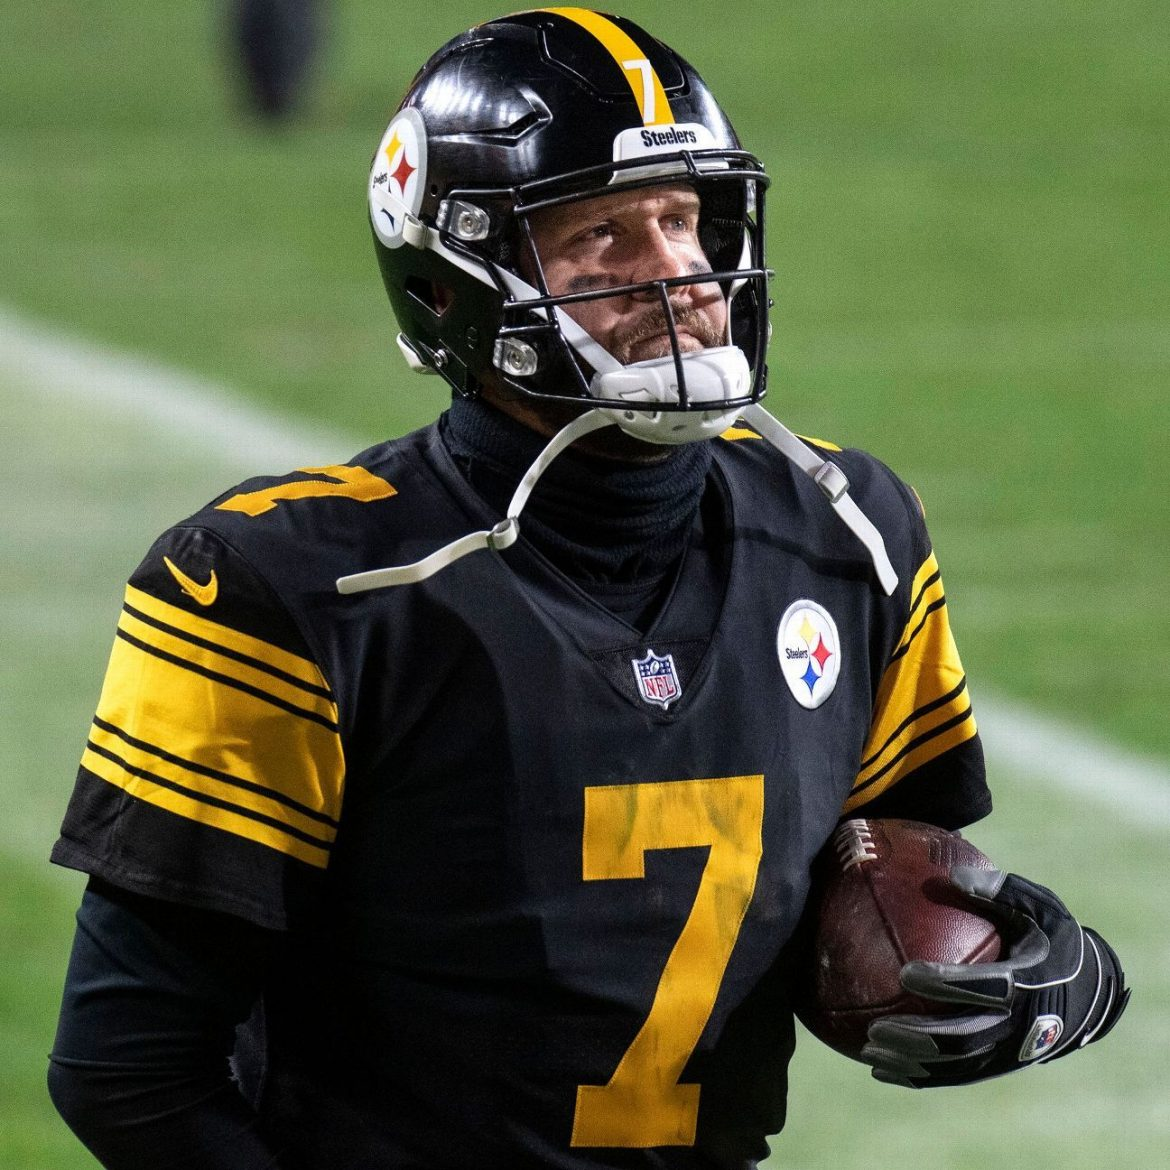 Sources: Steelers' Tomlin positive for COVID-19